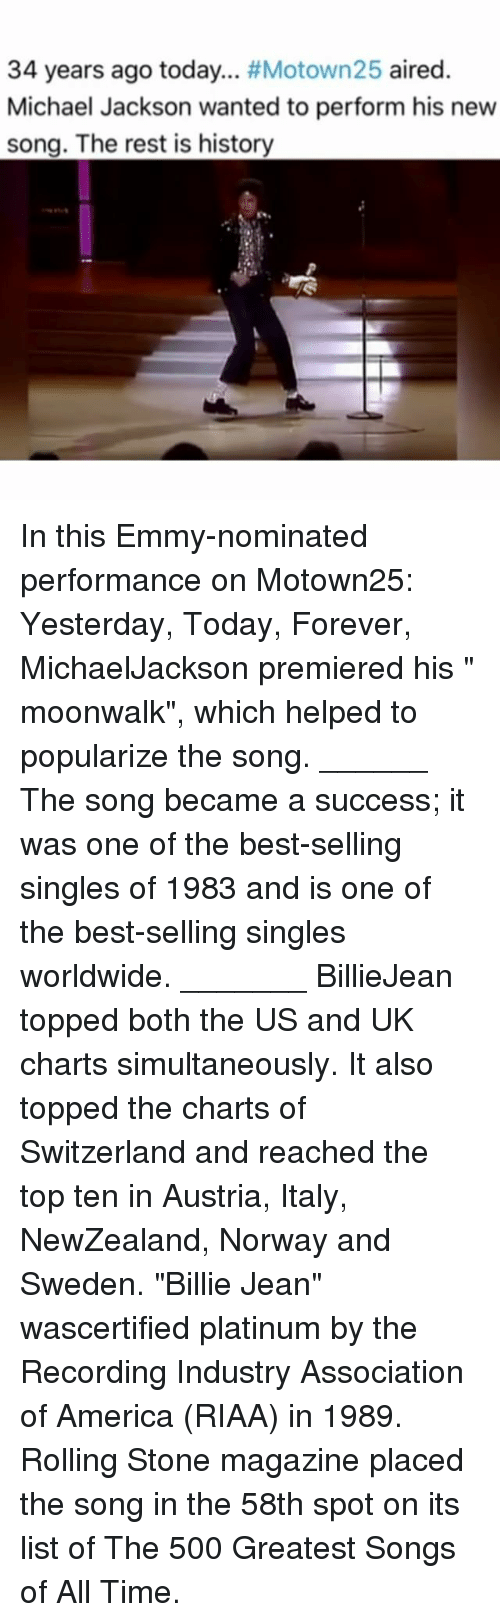 "America, Billie Jean, and Memes: 34 years ago today  #Motown25 aired  Michael Jackson wanted to perform his new  song. The rest is history In this Emmy-nominated performance on Motown25: Yesterday, Today, Forever, MichaelJackson premiered his "" moonwalk"", which helped to popularize the song. ______ The song became a success; it was one of the best-selling singles of 1983 and is one of the best-selling singles worldwide. _______ BillieJean topped both the US and UK charts simultaneously. It also topped the charts of Switzerland and reached the top ten in Austria, Italy, NewZealand, Norway and Sweden. ""Billie Jean"" wascertified platinum by the Recording Industry Association of America (RIAA) in 1989. Rolling Stone magazine placed the song in the 58th spot on its list of The 500 Greatest Songs of All Time."